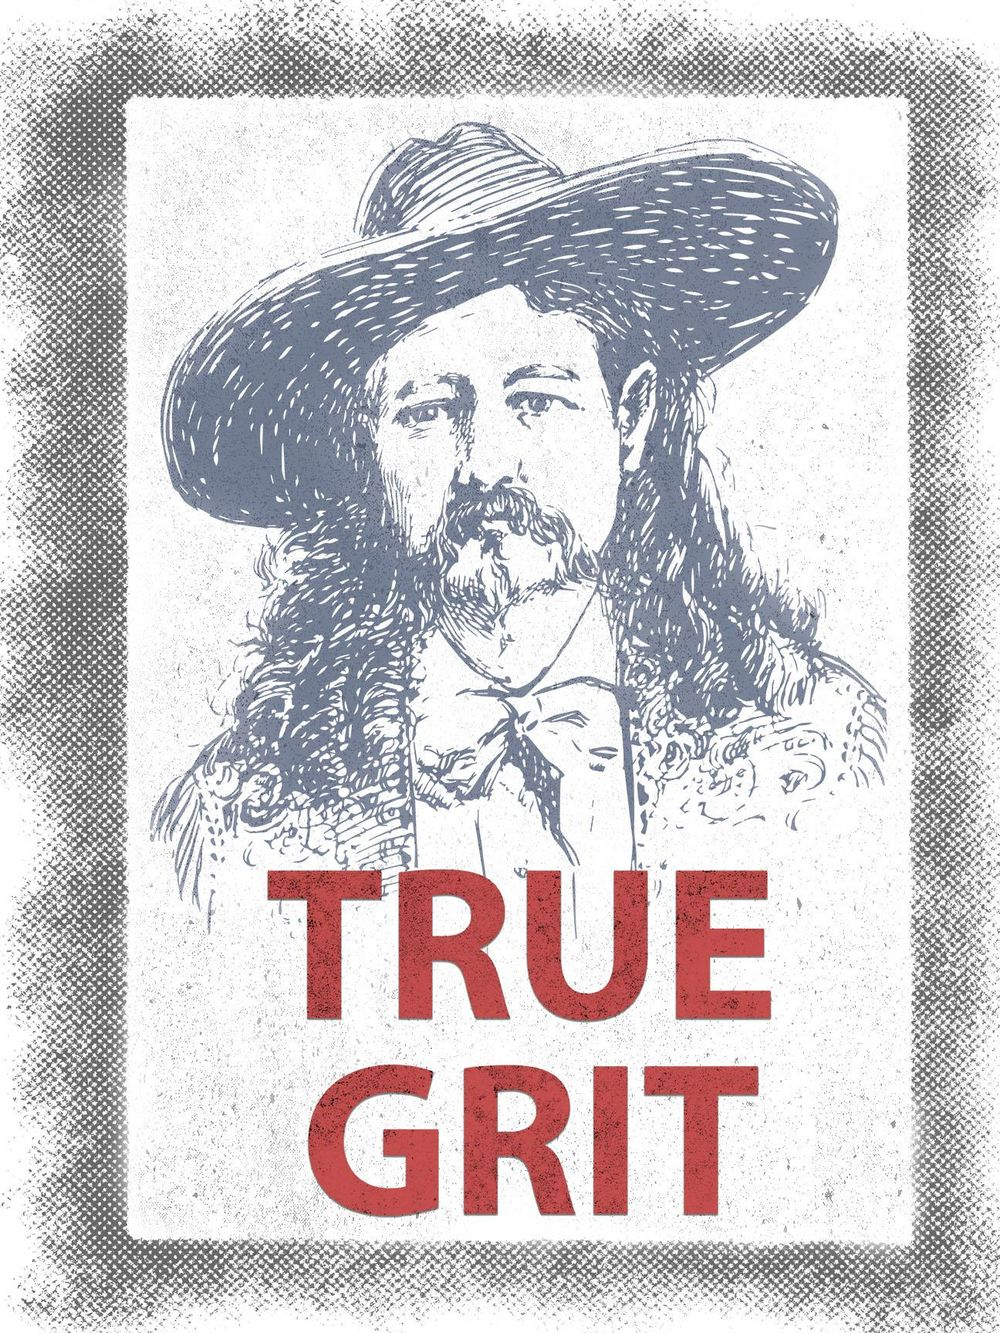 True Grit Poster - image 2 - student project